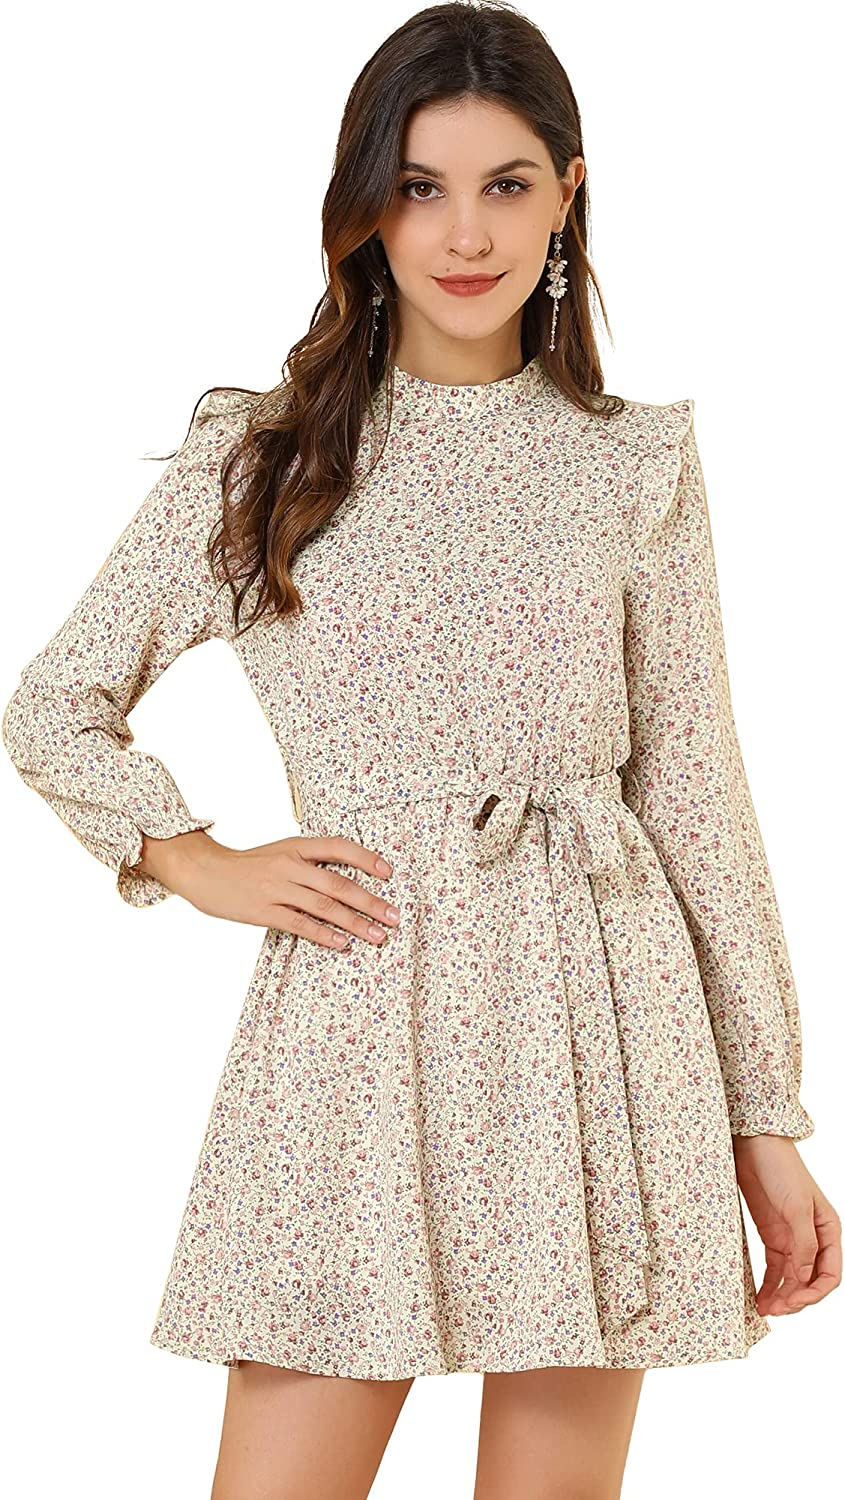 Allegra K Women's Ruffled Trim Stand Vintage Max 71% OFF Belted Collar Daisy Popular products